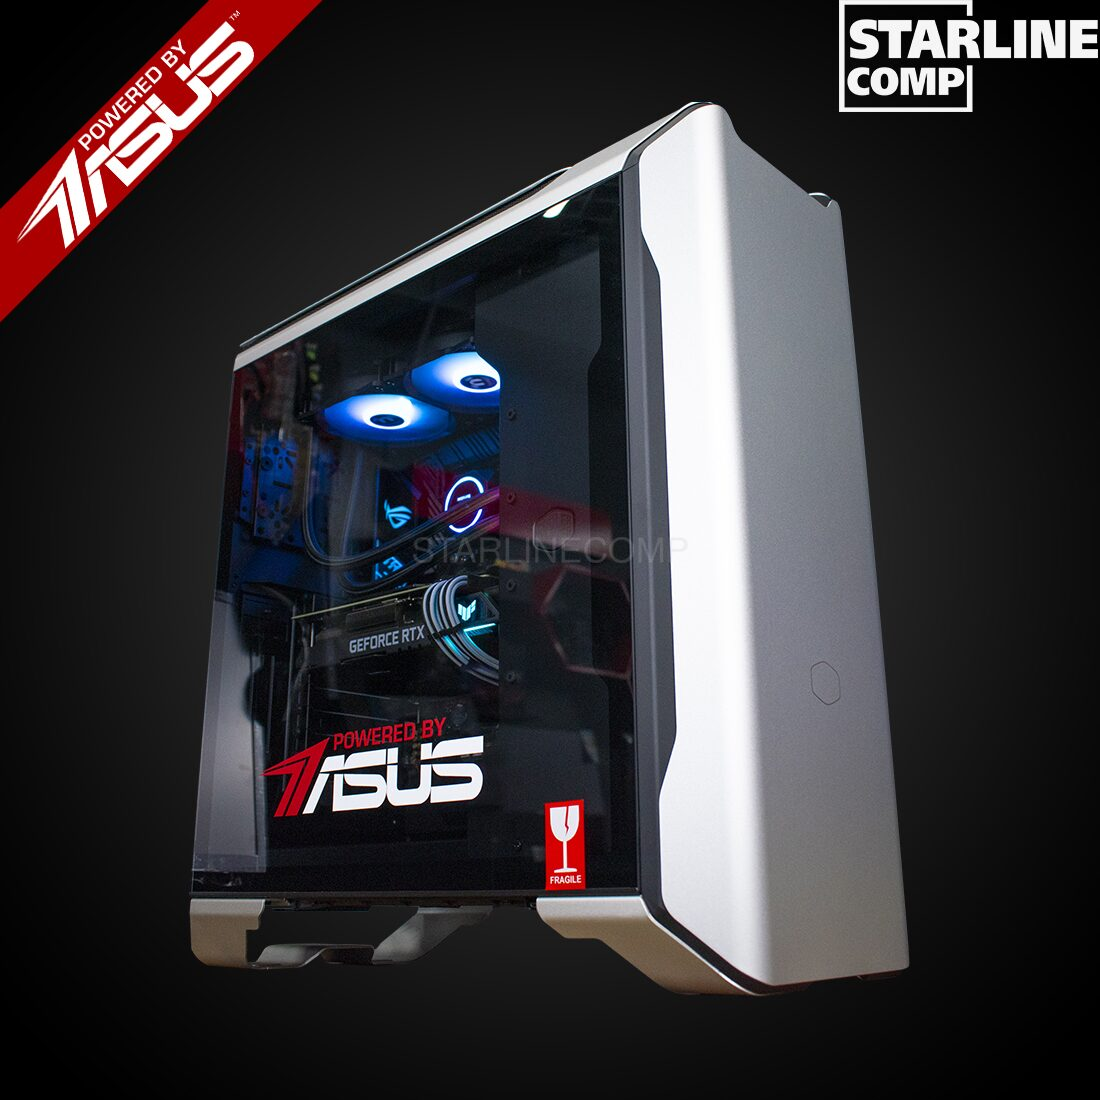 НОВАЯ СБОРКА POWERED BY ASUS!!! INTEL CORE I9-10900F, 128Gb RAM, RTX 3080 OC 10Gb, SSD 1000Gb, HDD 4000Gb